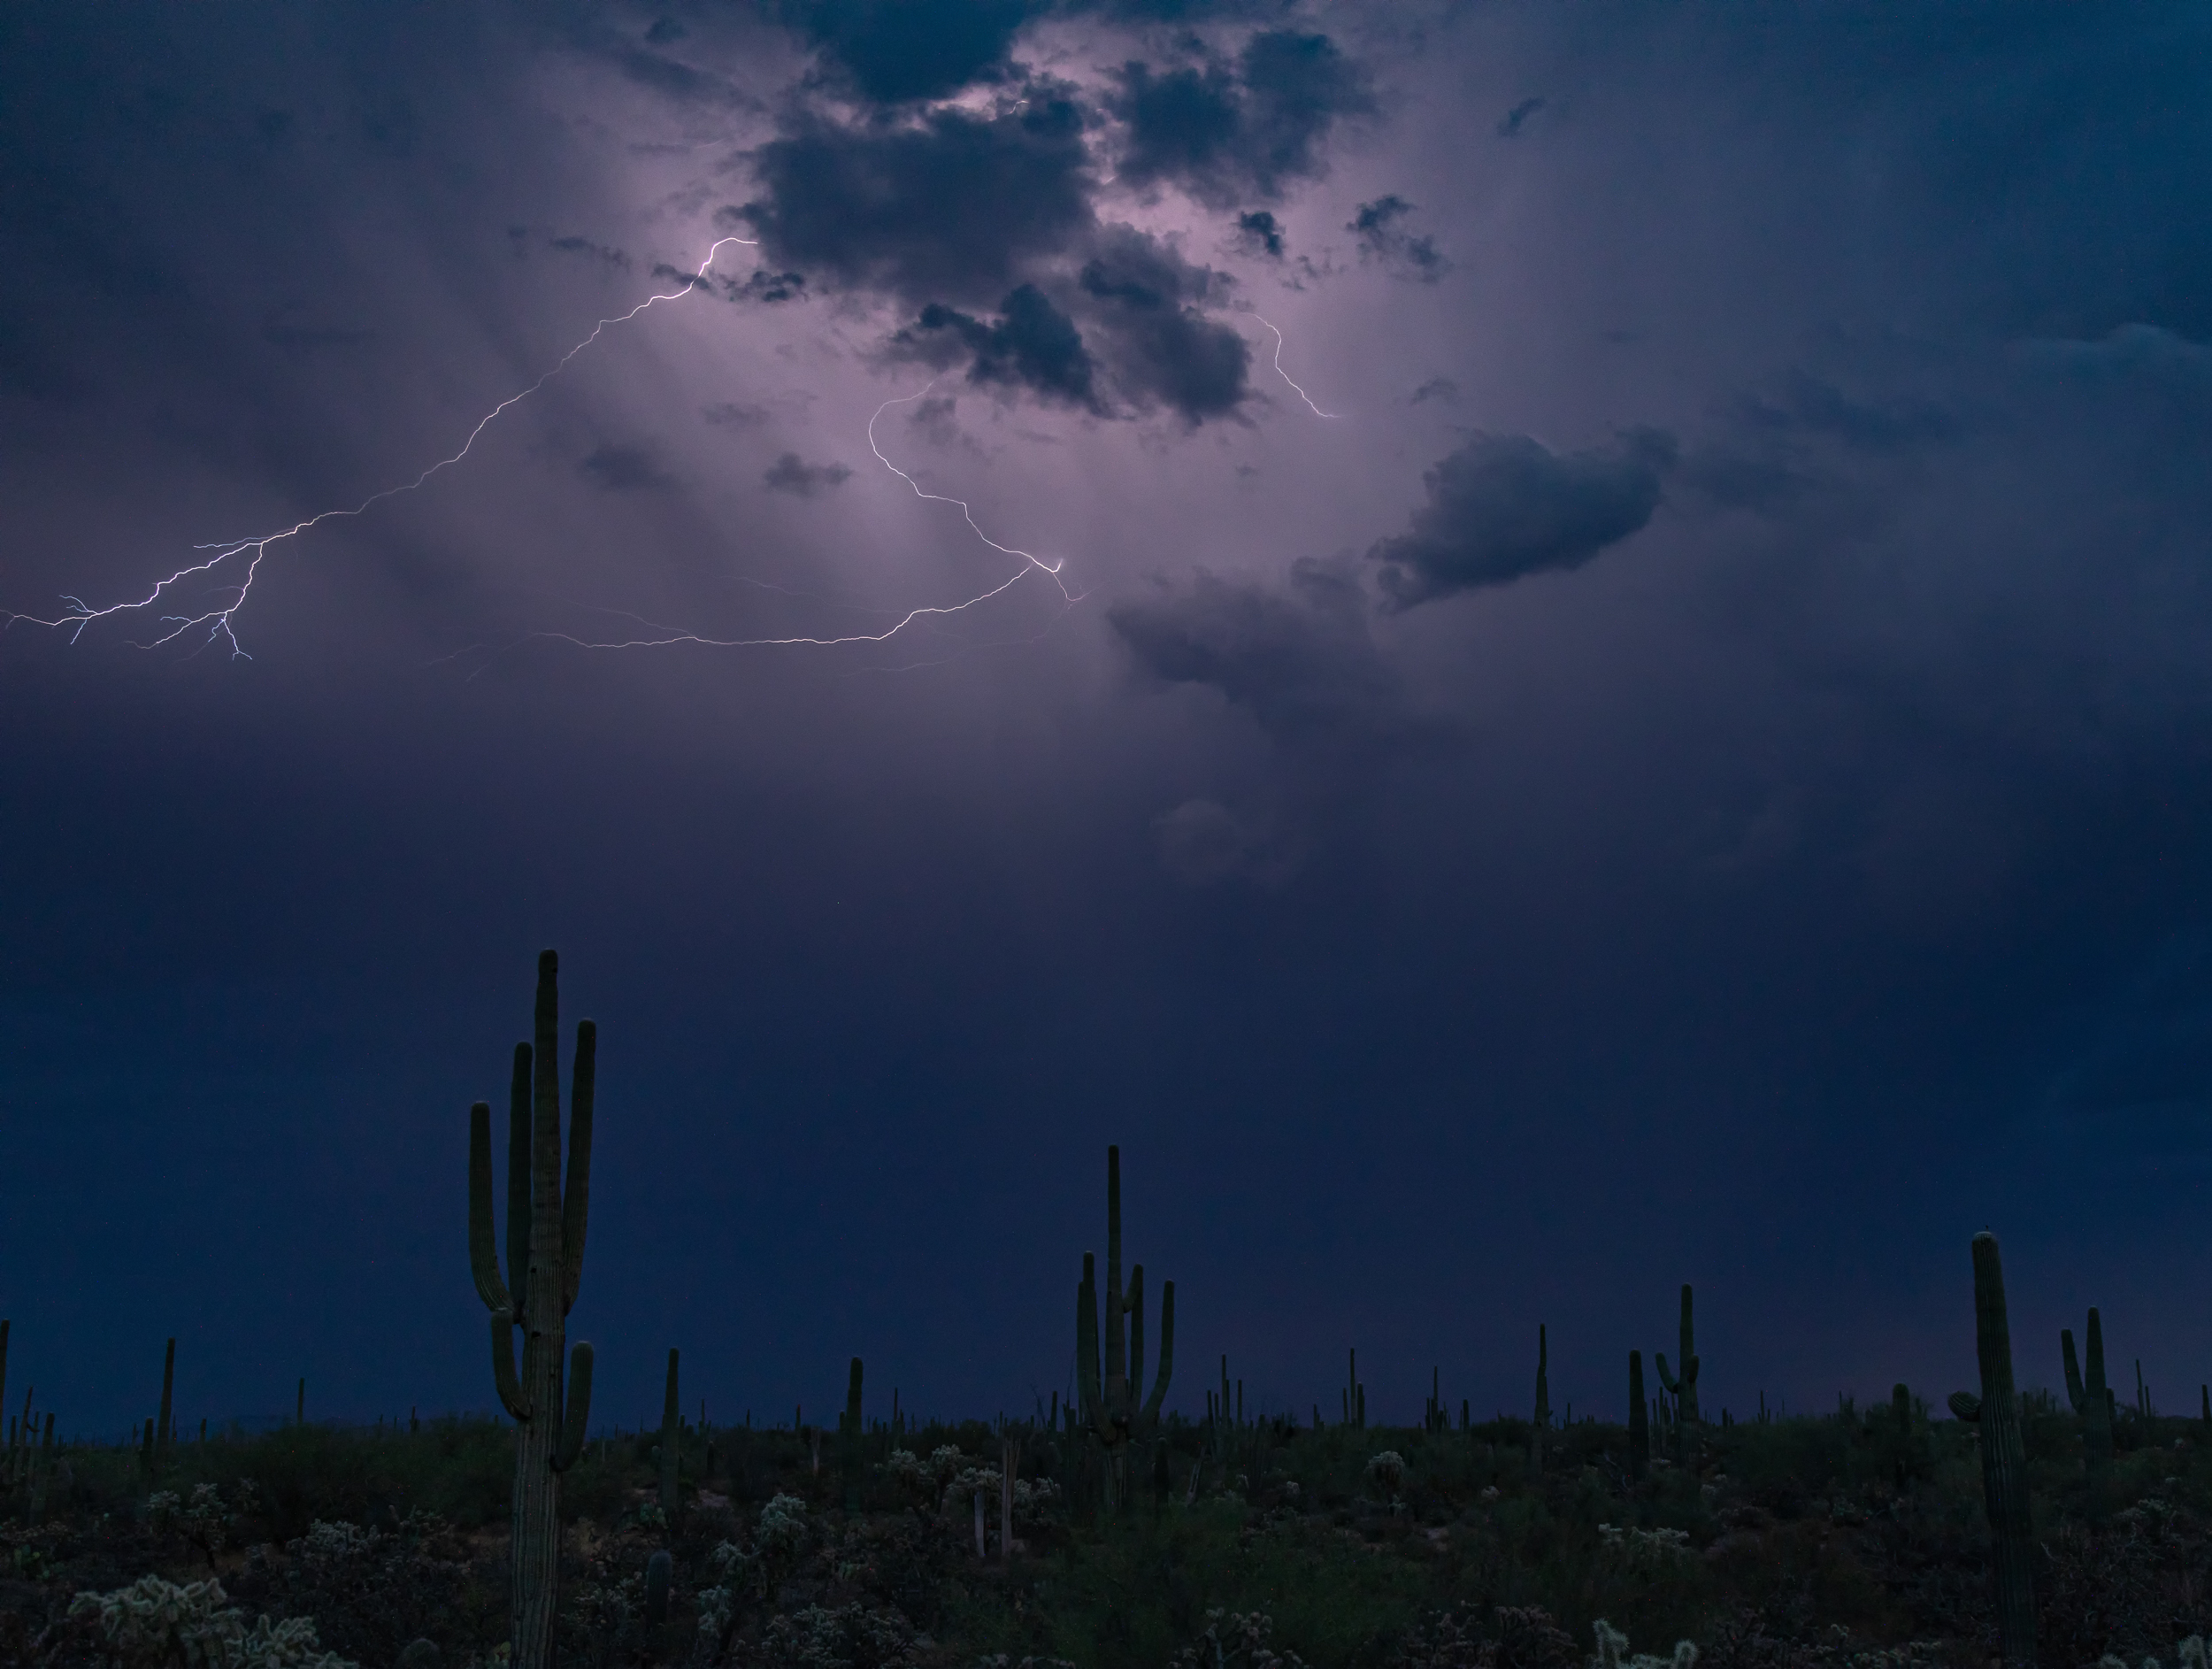 ArizonaStormChasing_20190723_0084-Edit-2.jpg